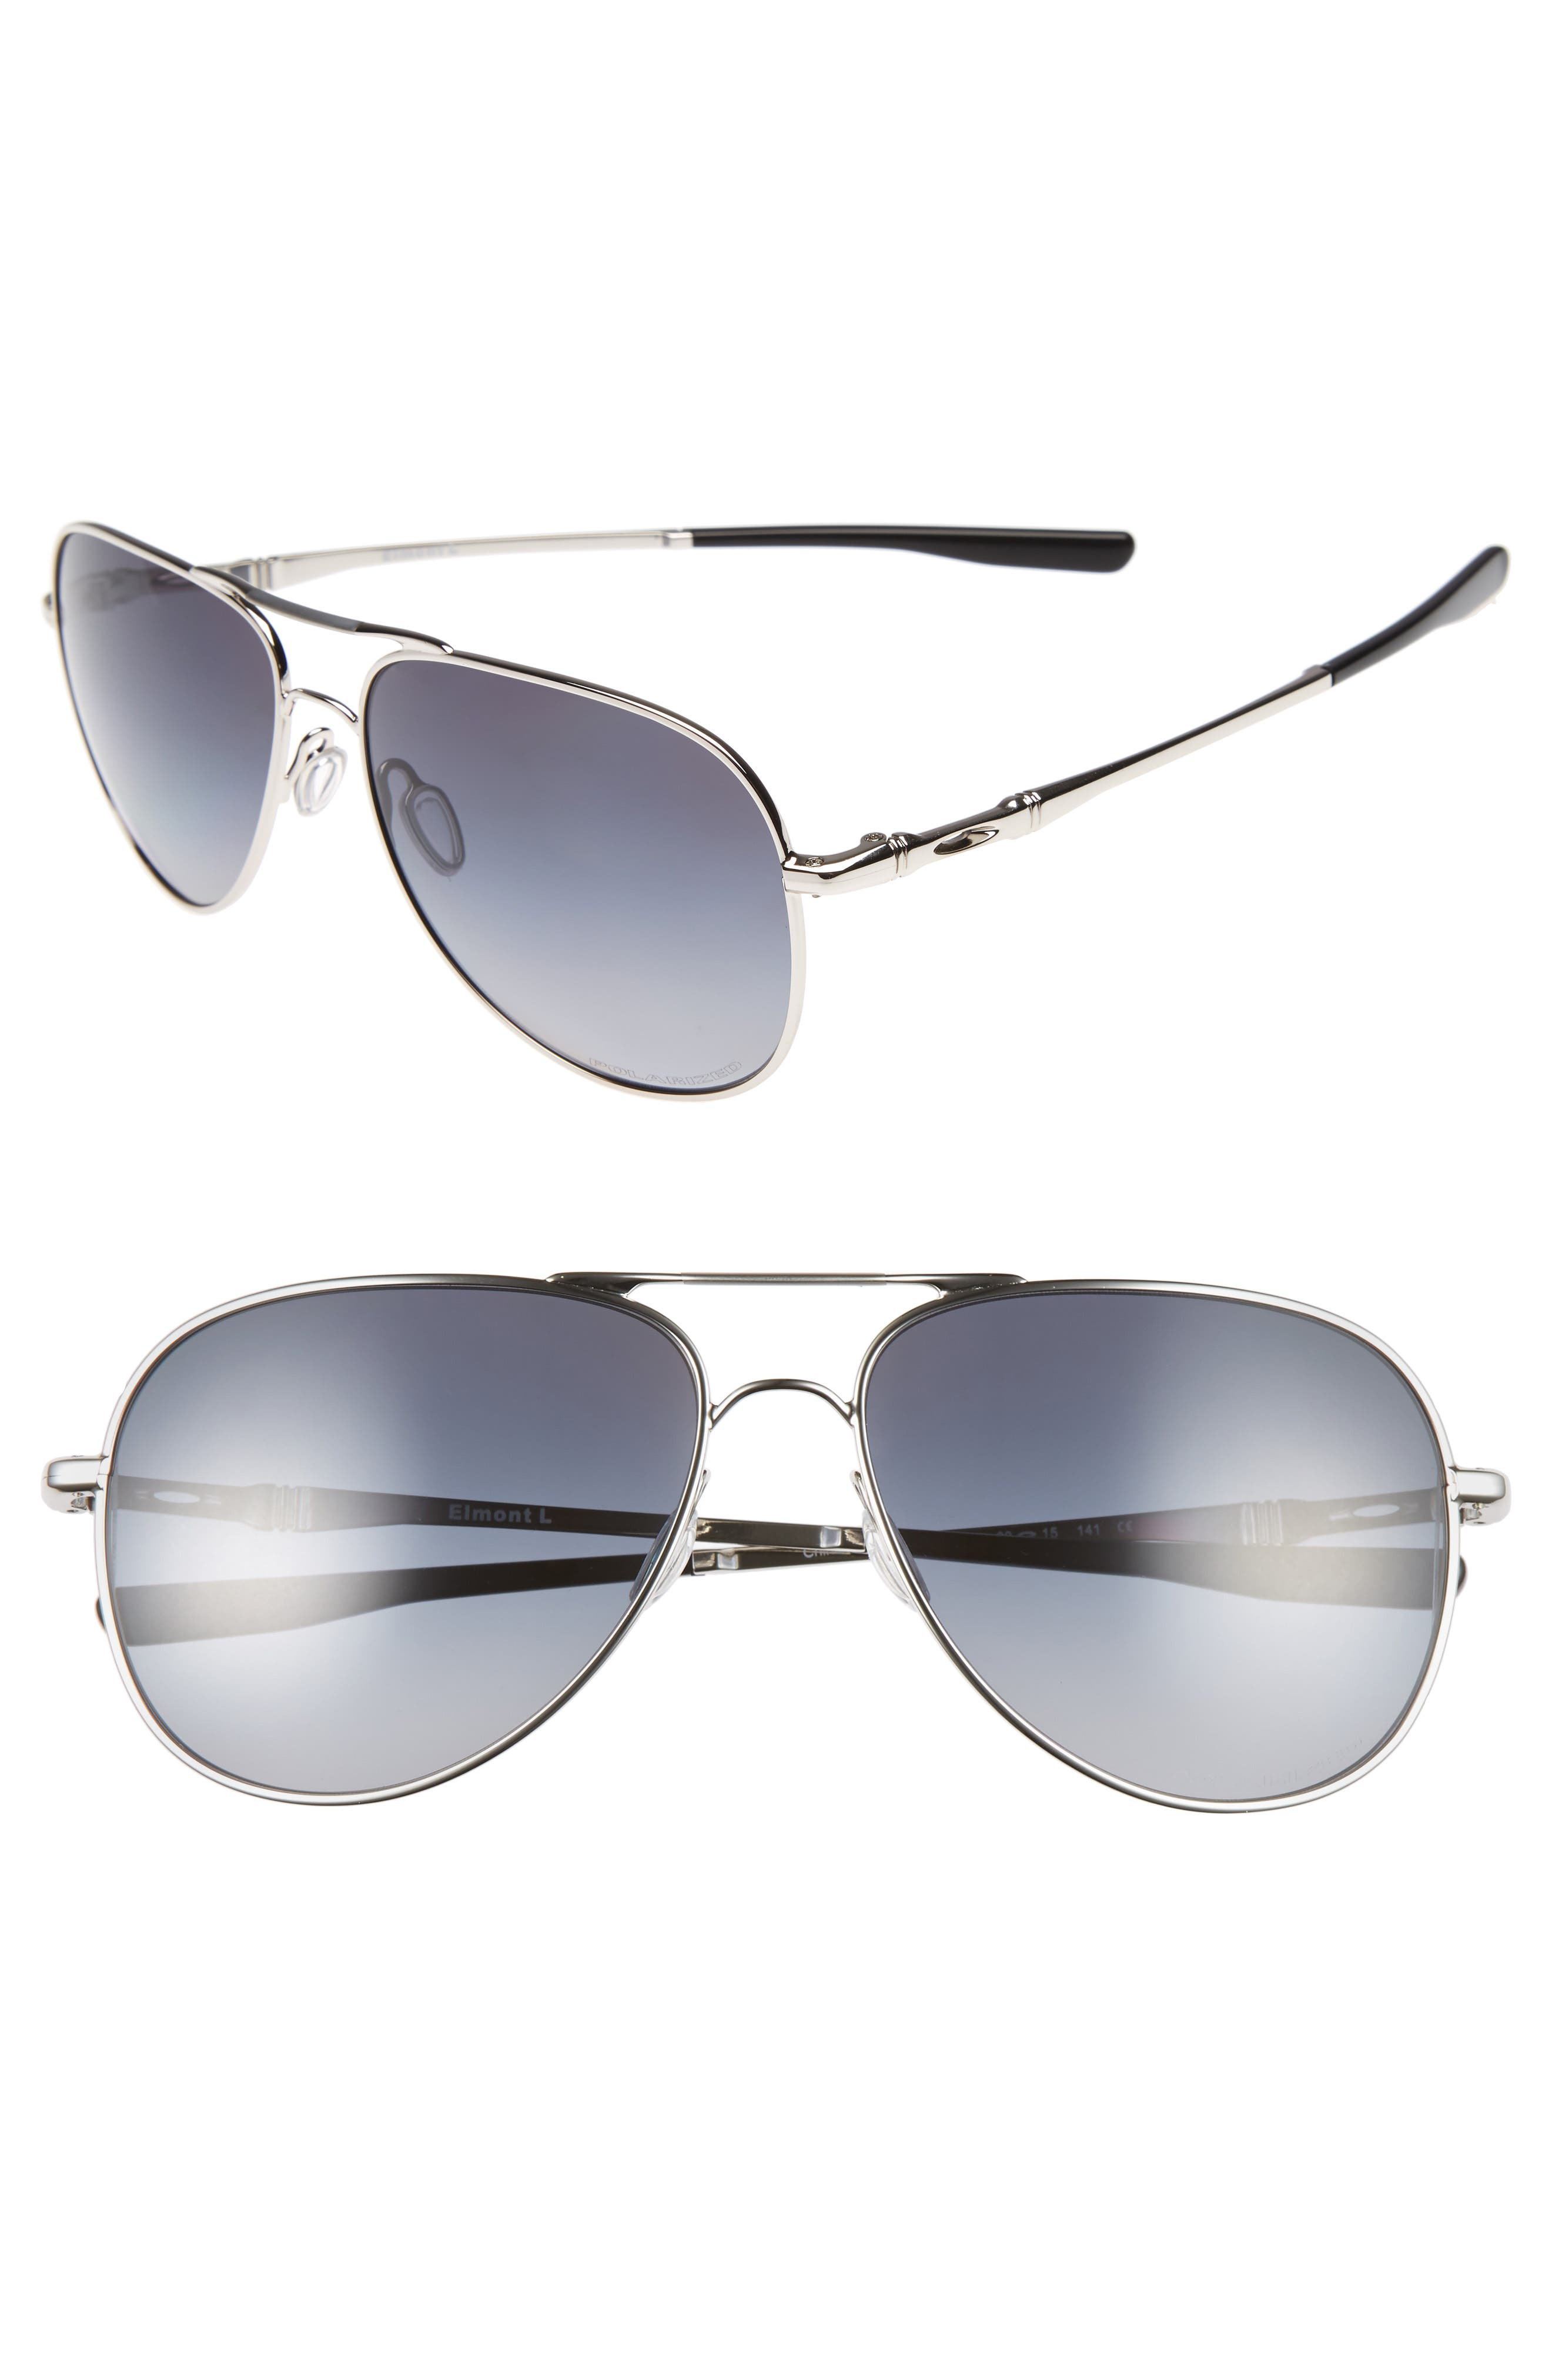 Elmont 61mm Polarized Aviator Sunglasses,                             Main thumbnail 1, color,                             SILVER